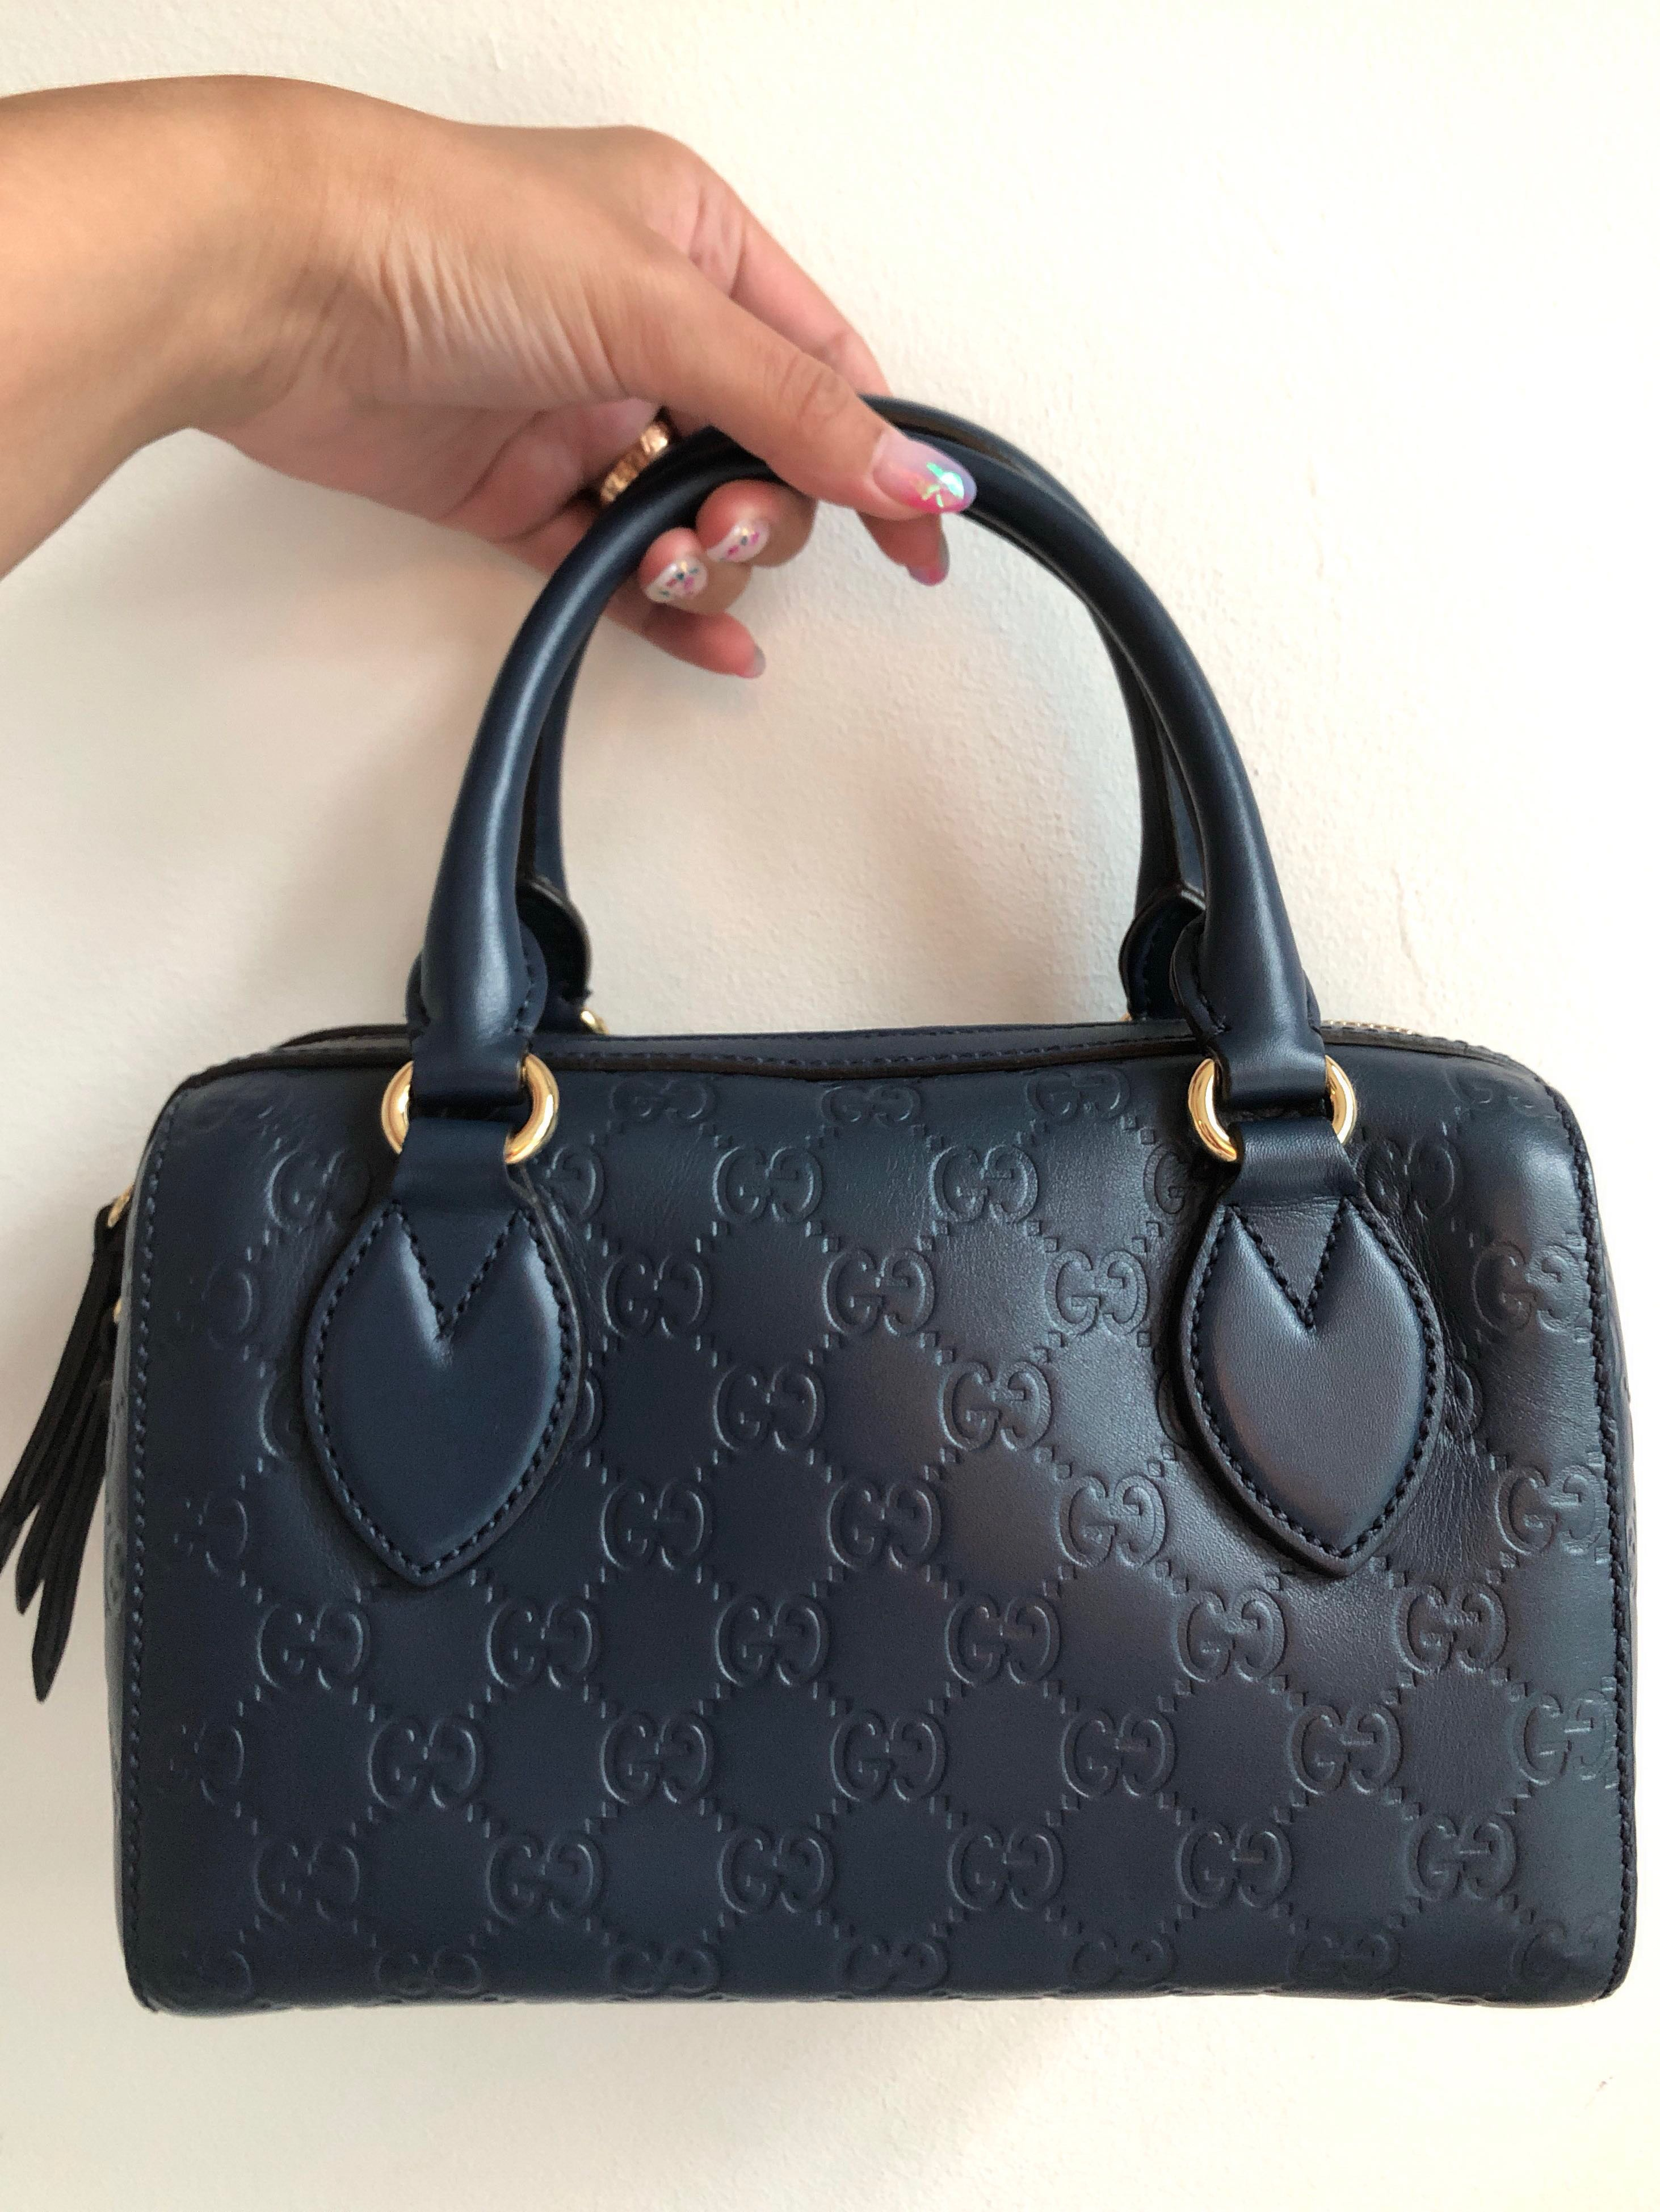 8287a8d88 Gucci Guccissima Signature Boston bag (Blue), Luxury, Bags & Wallets,  Handbags on Carousell